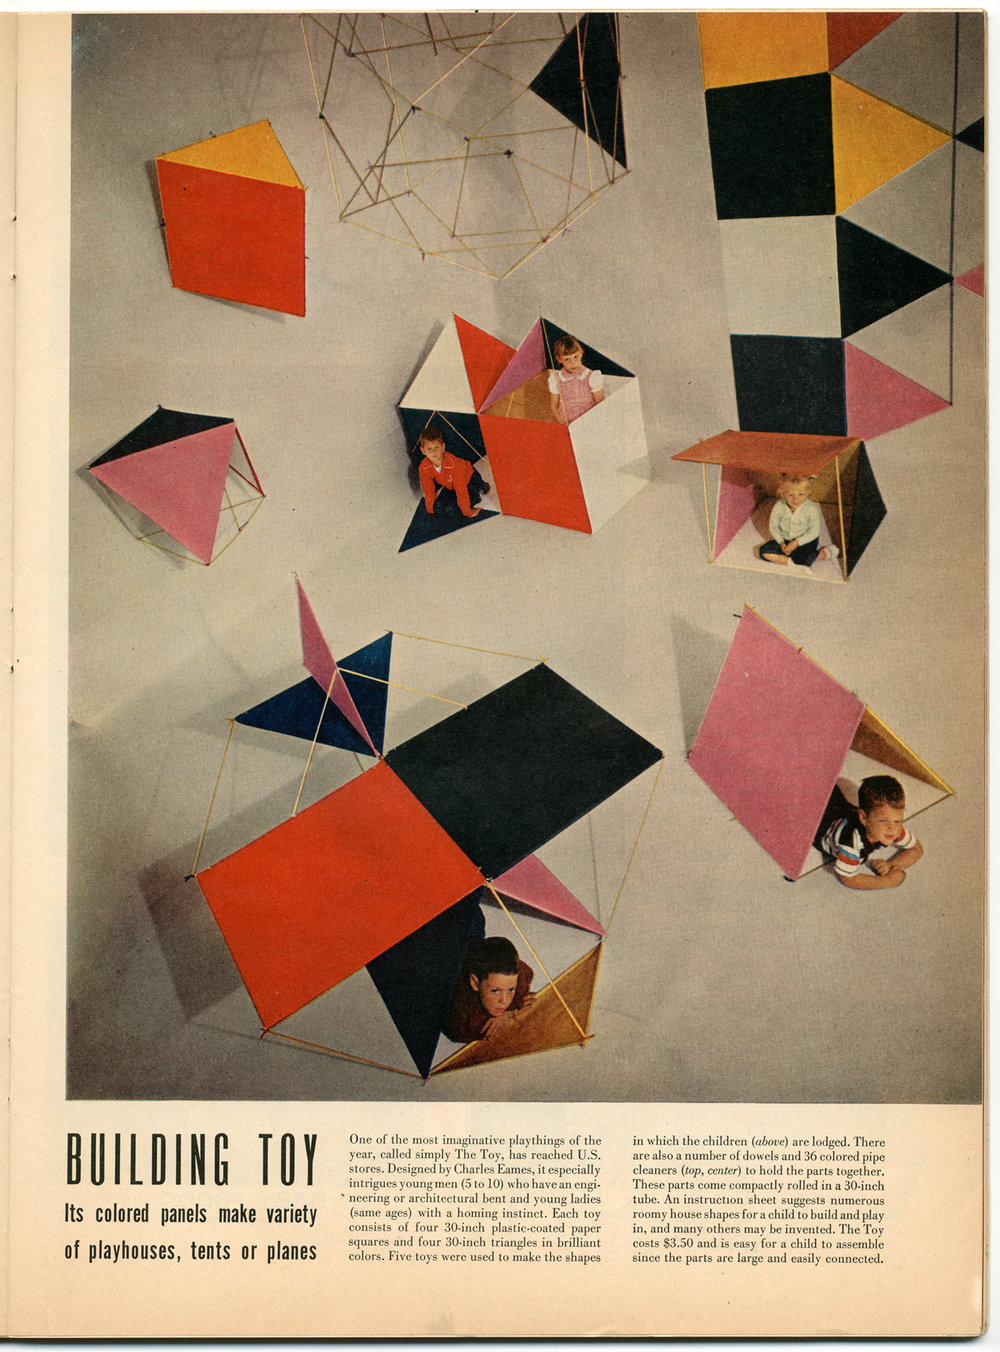 04. Feature of The Toy in Life magazine, July 16, 1951.jpg